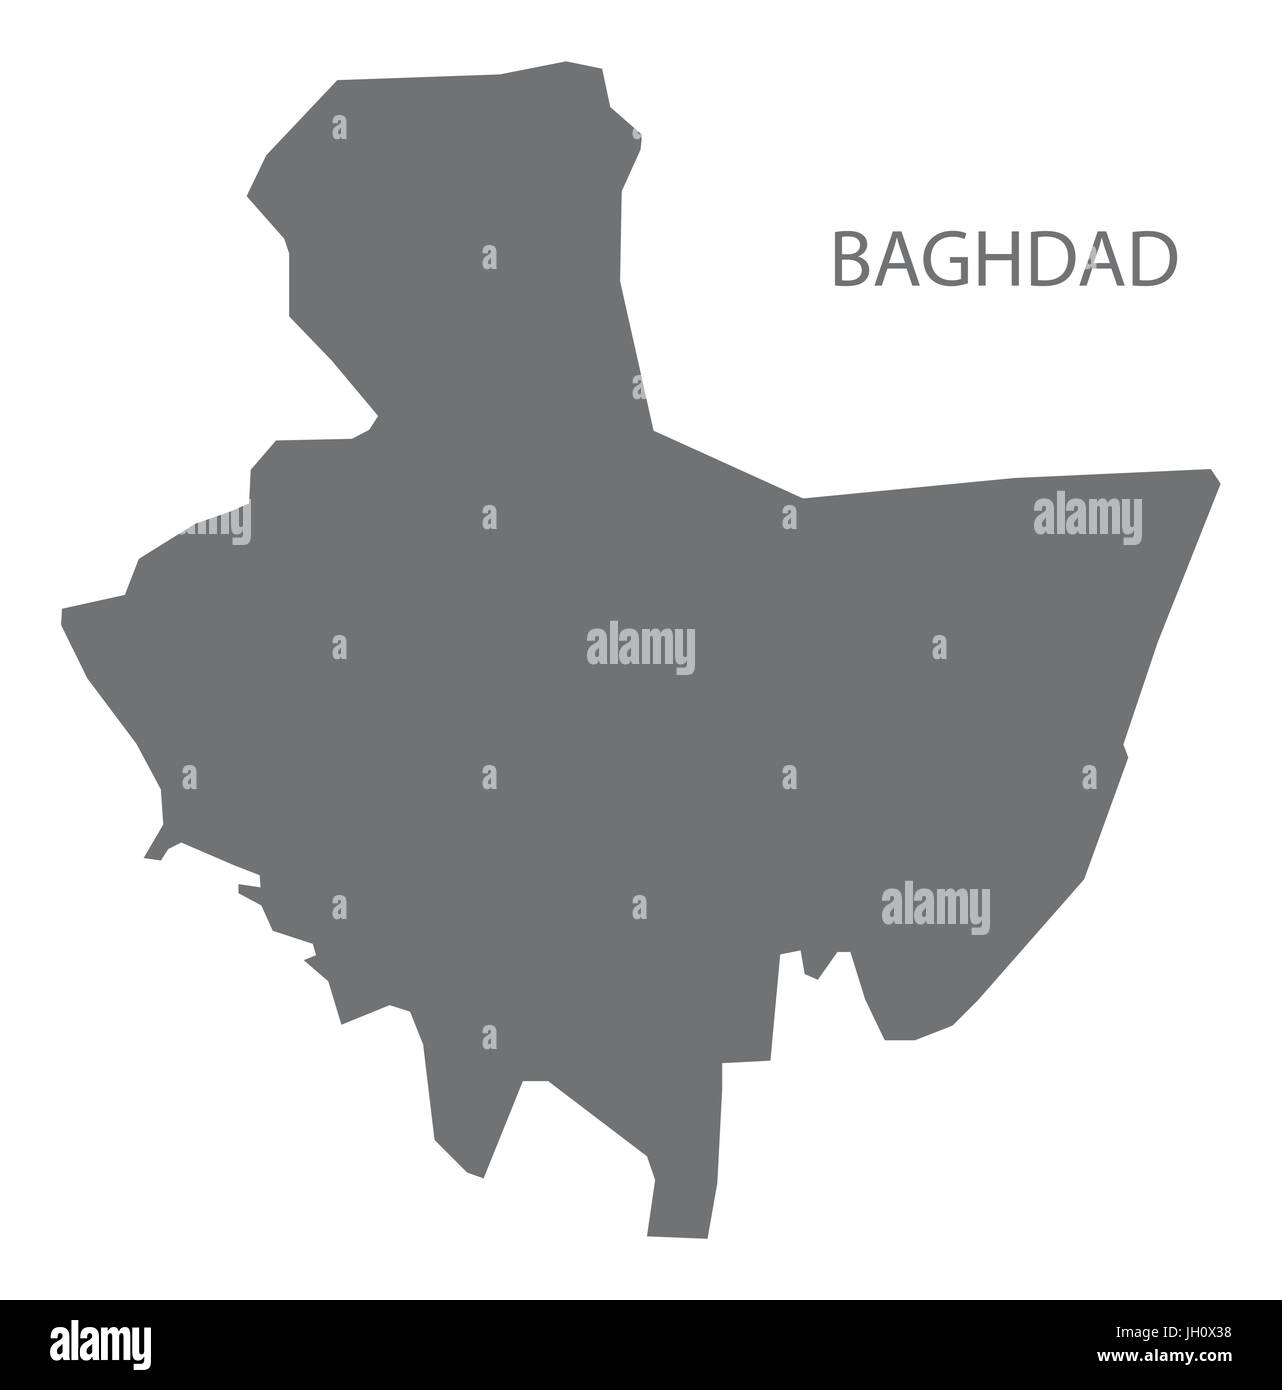 Baghdad Iraq map grey illustration silhouette Stock Vector Art ...